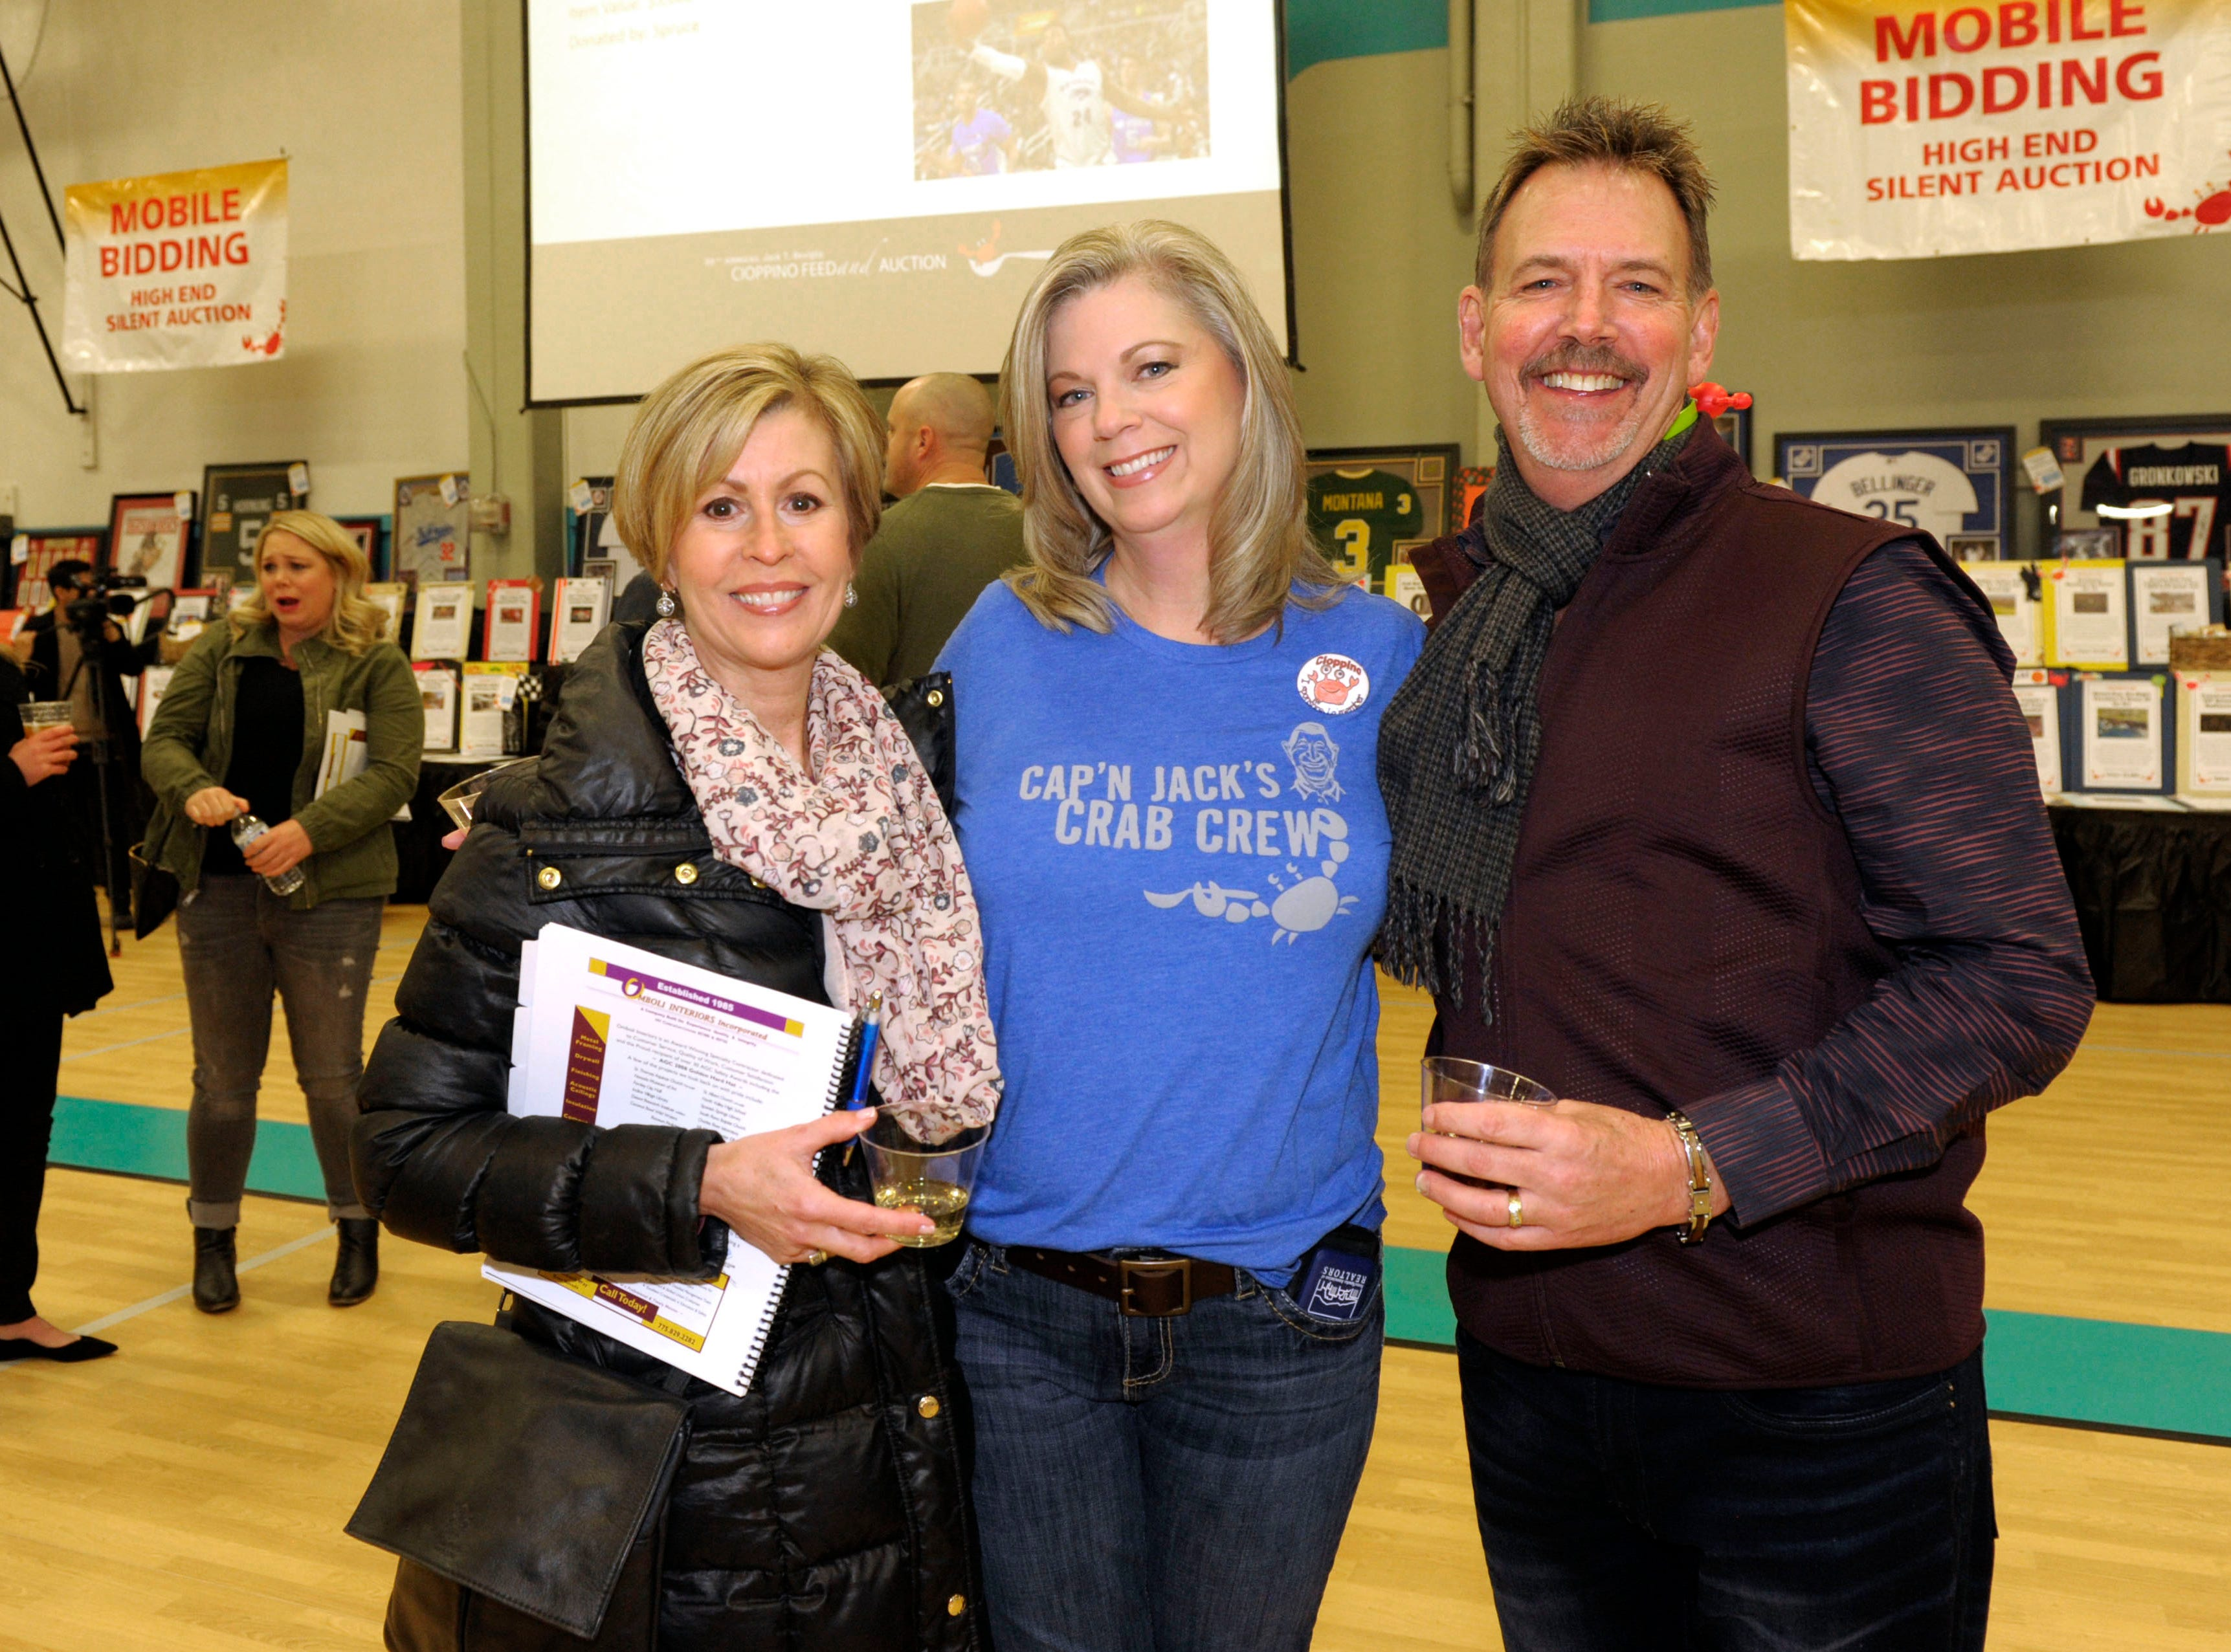 Deb de Lancey, Erin Schiller and Jim de Lancey attend the 39th Annual Jack T. Reviglio Cioppino Feed and Auction at the Boys & Girls Club of Truckee Meadows Sat., Feb. 23, 2019. Photos by Lisa J. Tolda/Special to the RGJ.